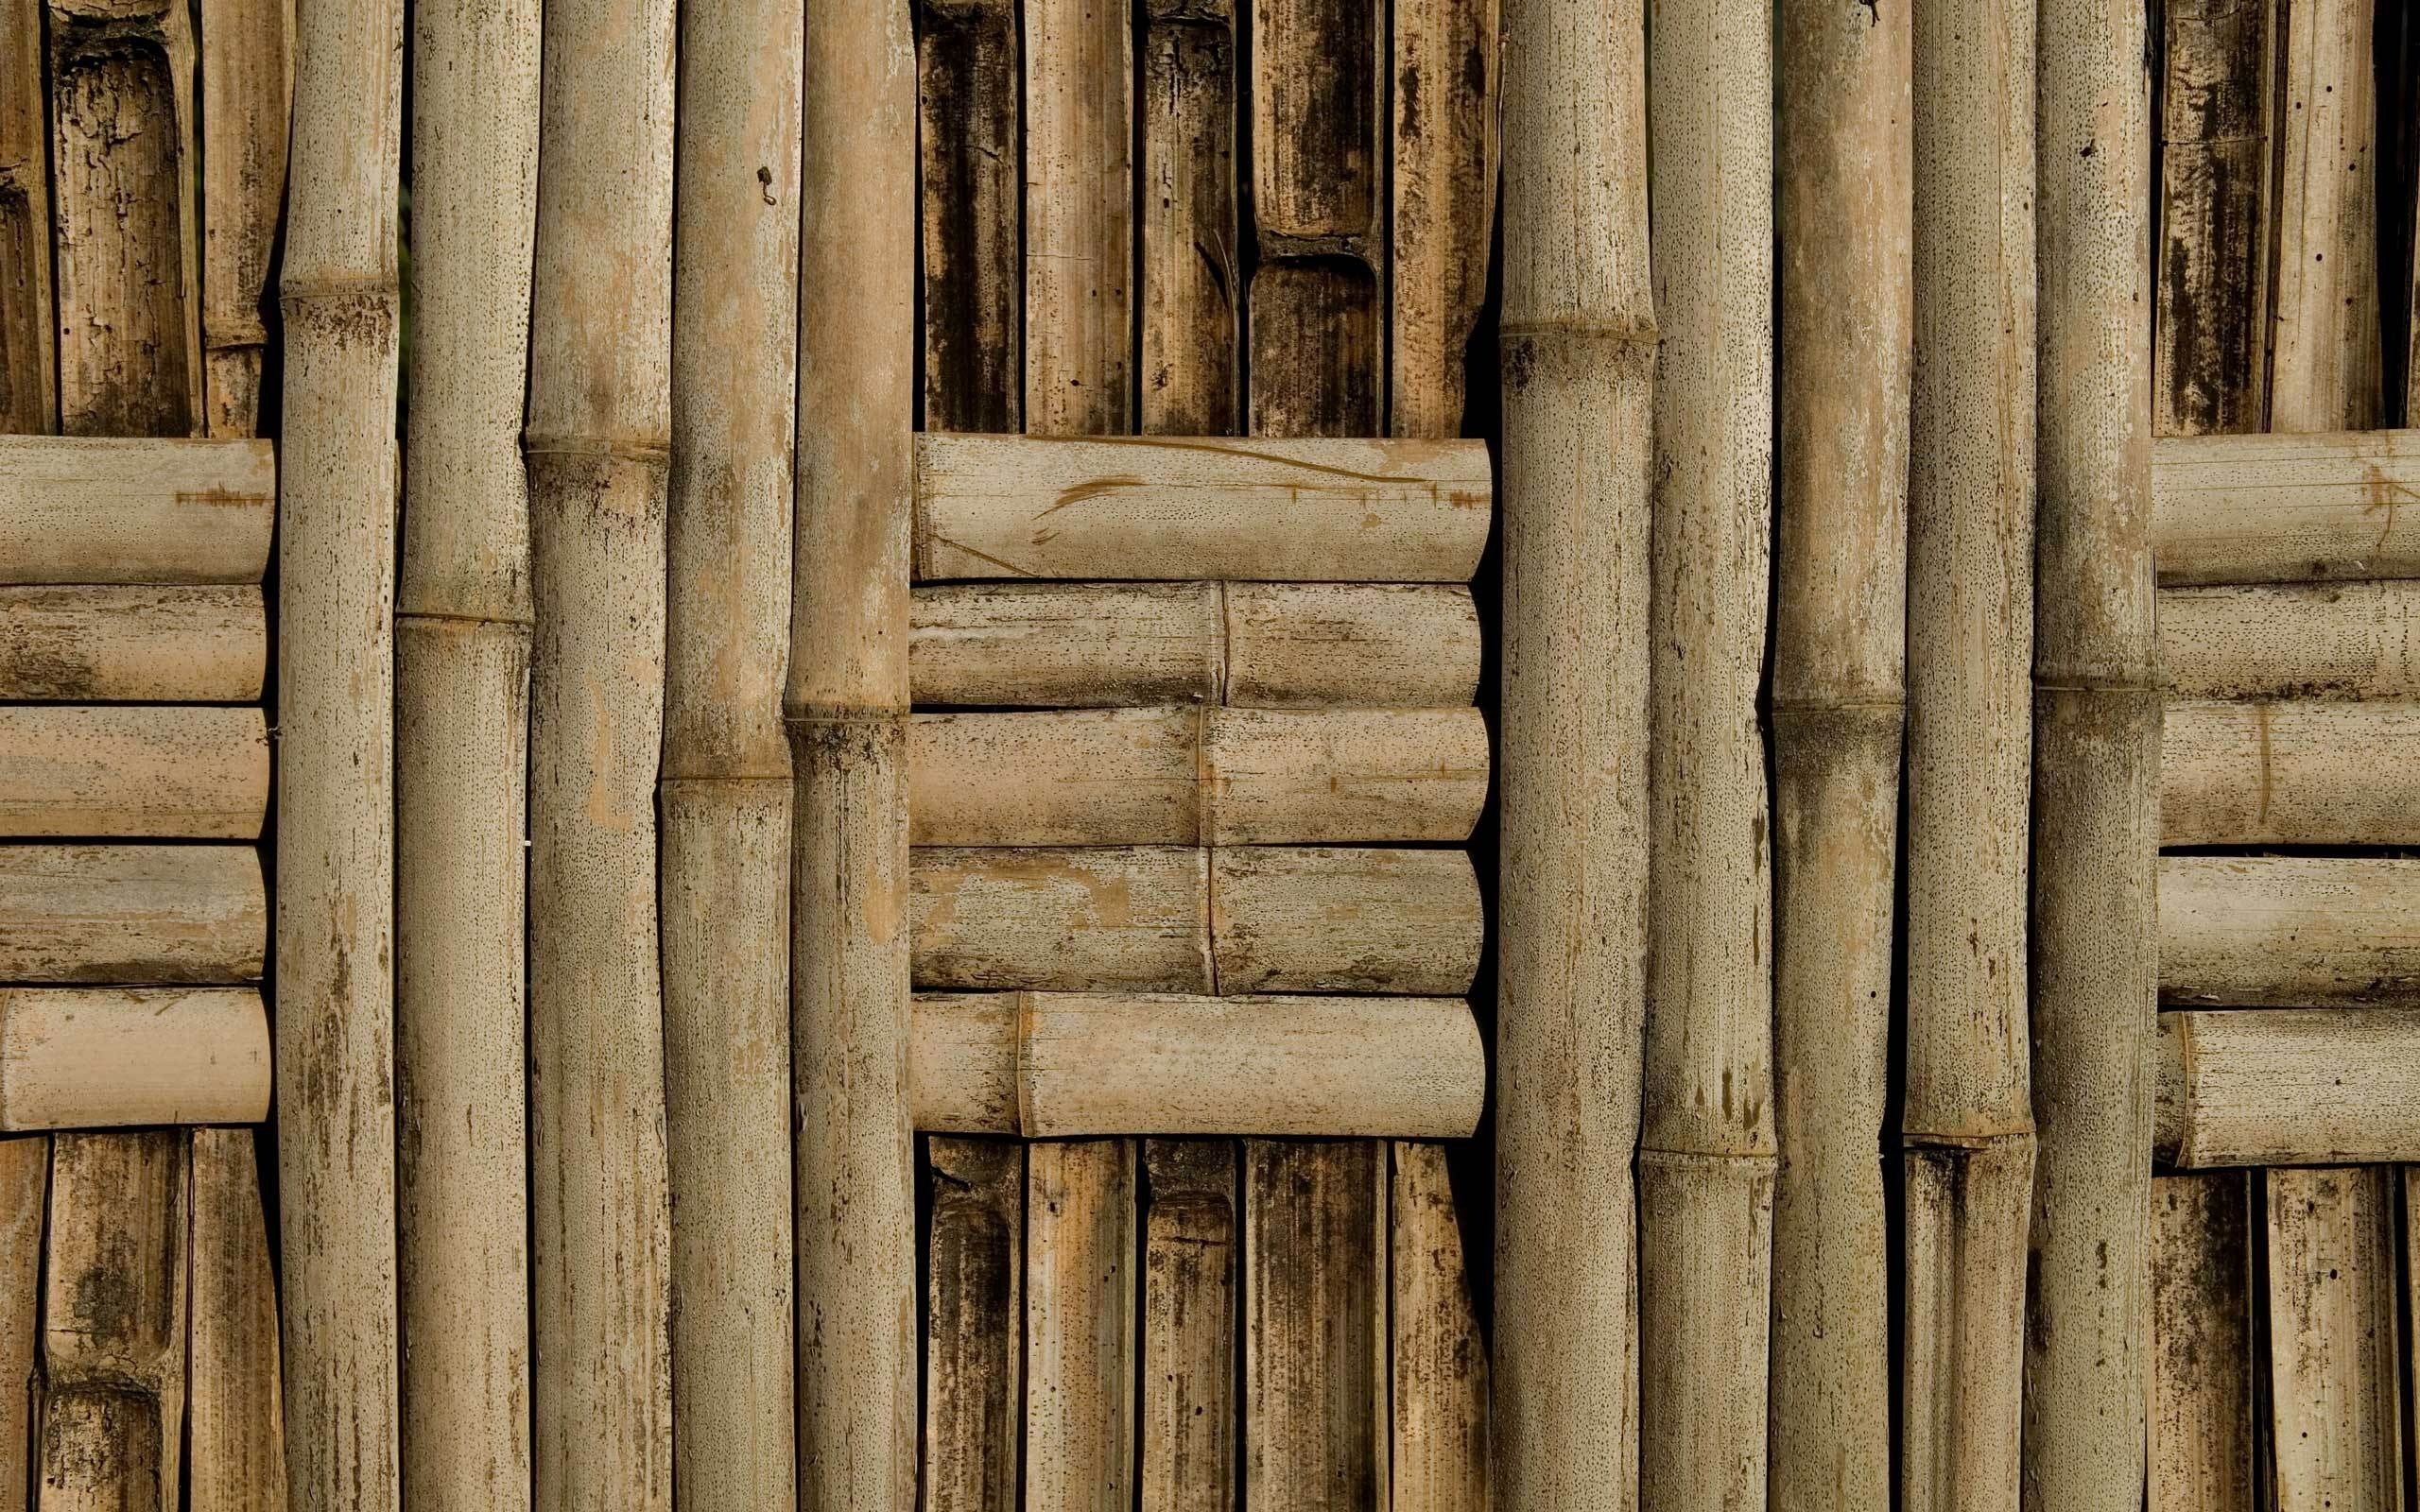 2560x1600 bamboo, texture bamboo , bamboo texture, photo, background